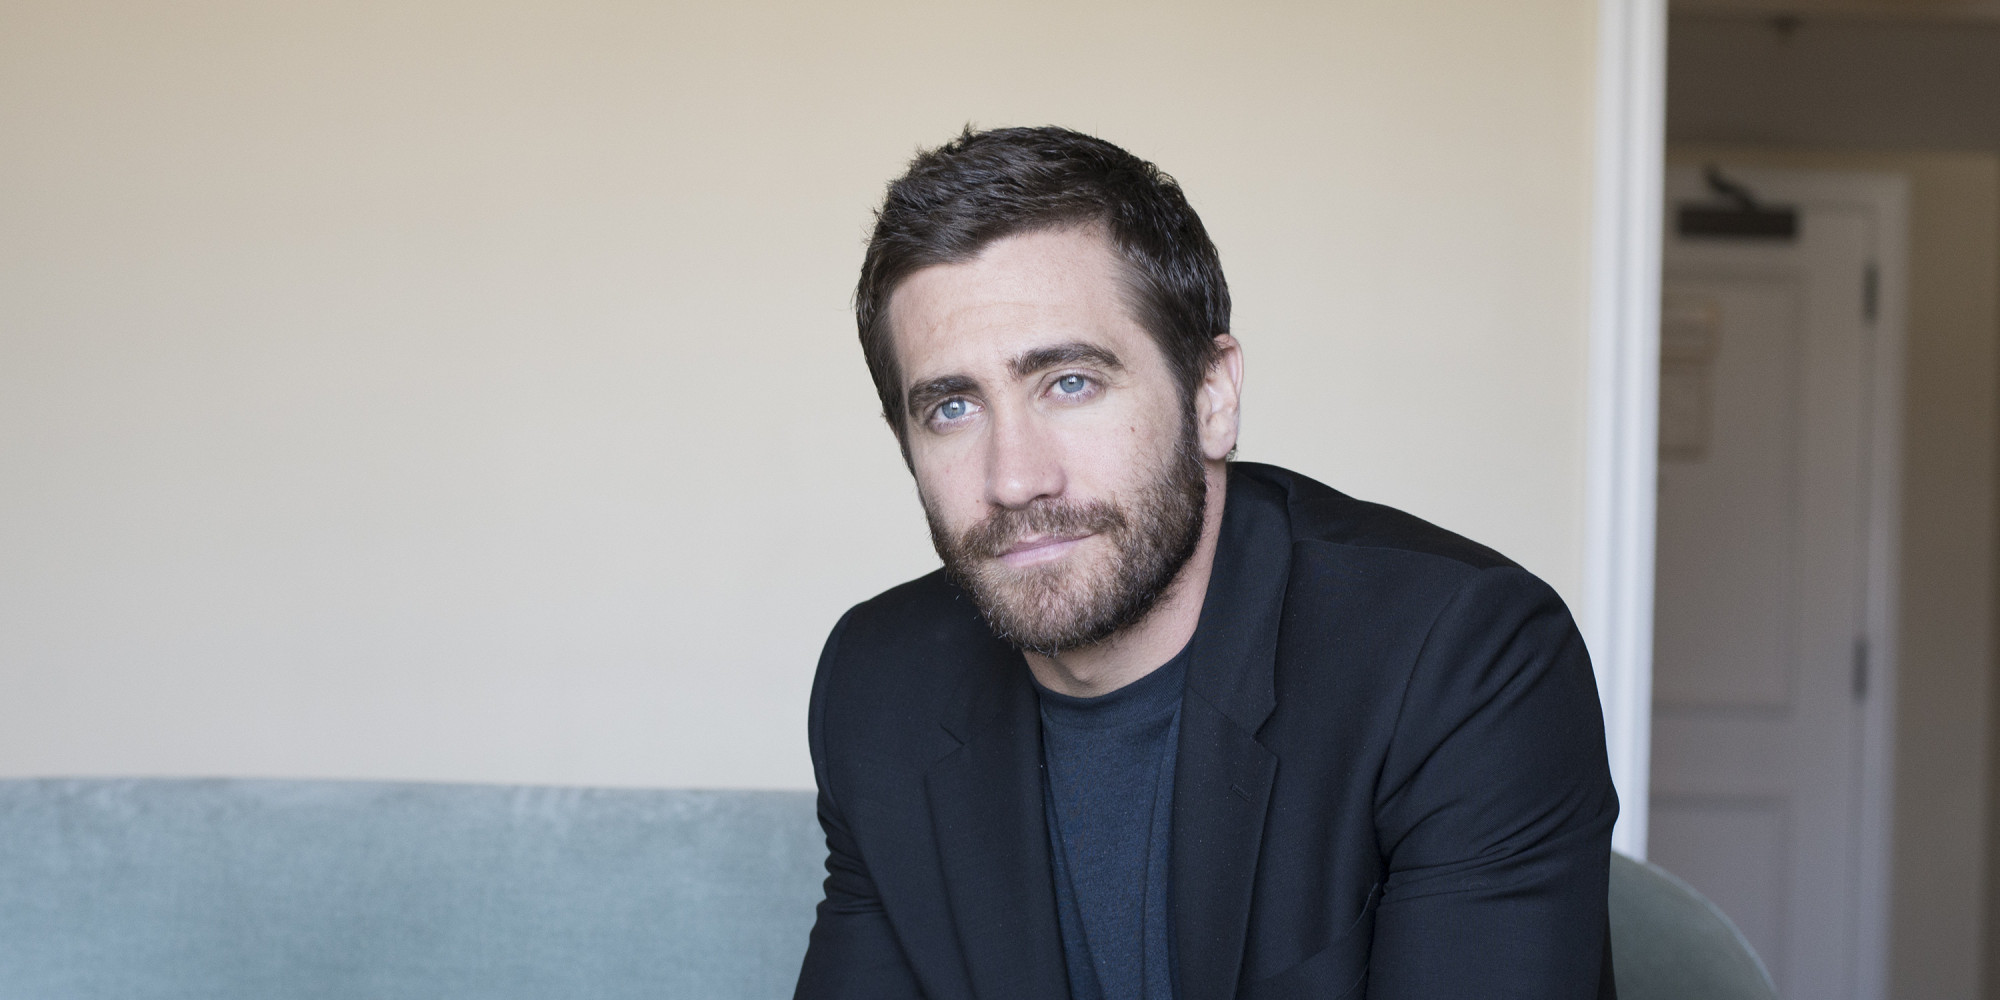 Jake Gyllenhaal's World Changed, And Then So Did His Career Jake Gyllenhaal